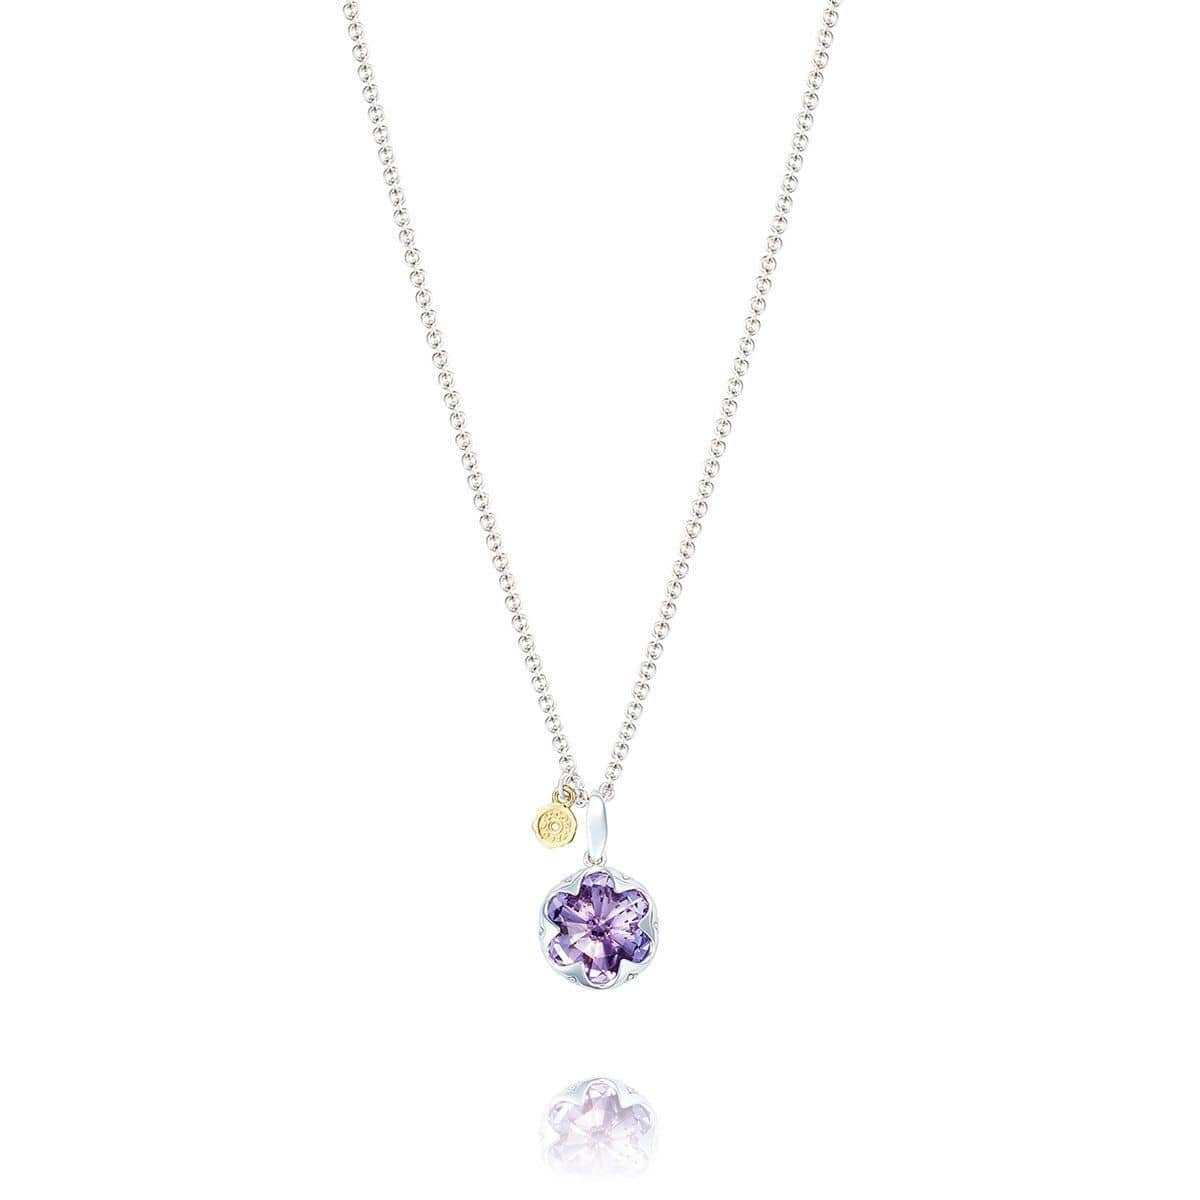 Sterling Silver Gemstone Pendant Necklace with Amethyst - SN19901-Tacori-Renee Taylor Gallery